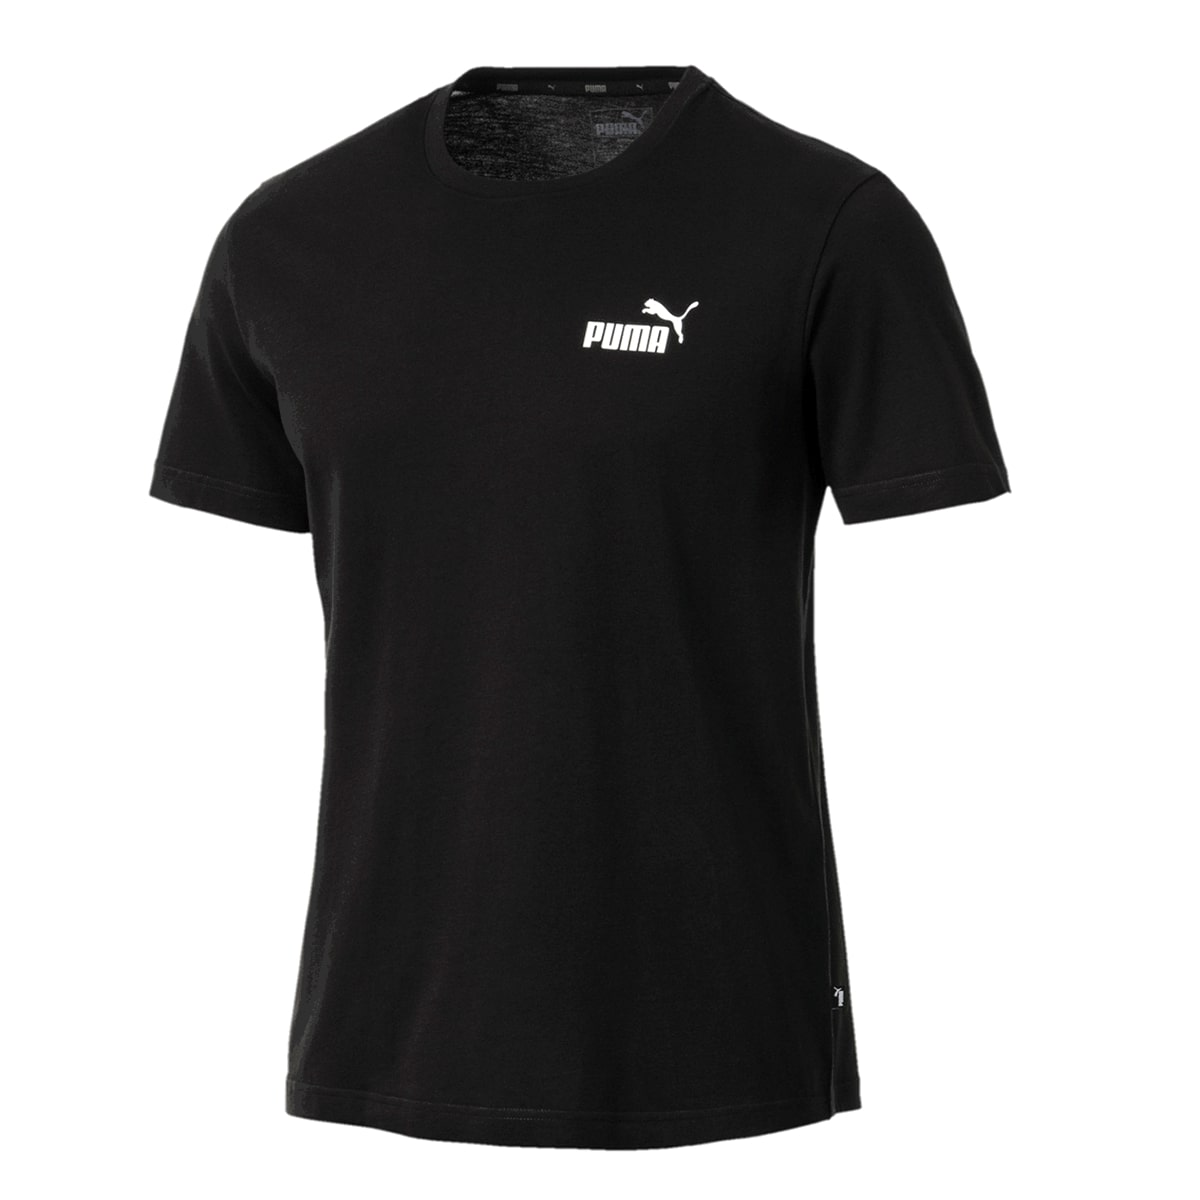 Camiseta Puma Essentials Small Logo Masculino Preto